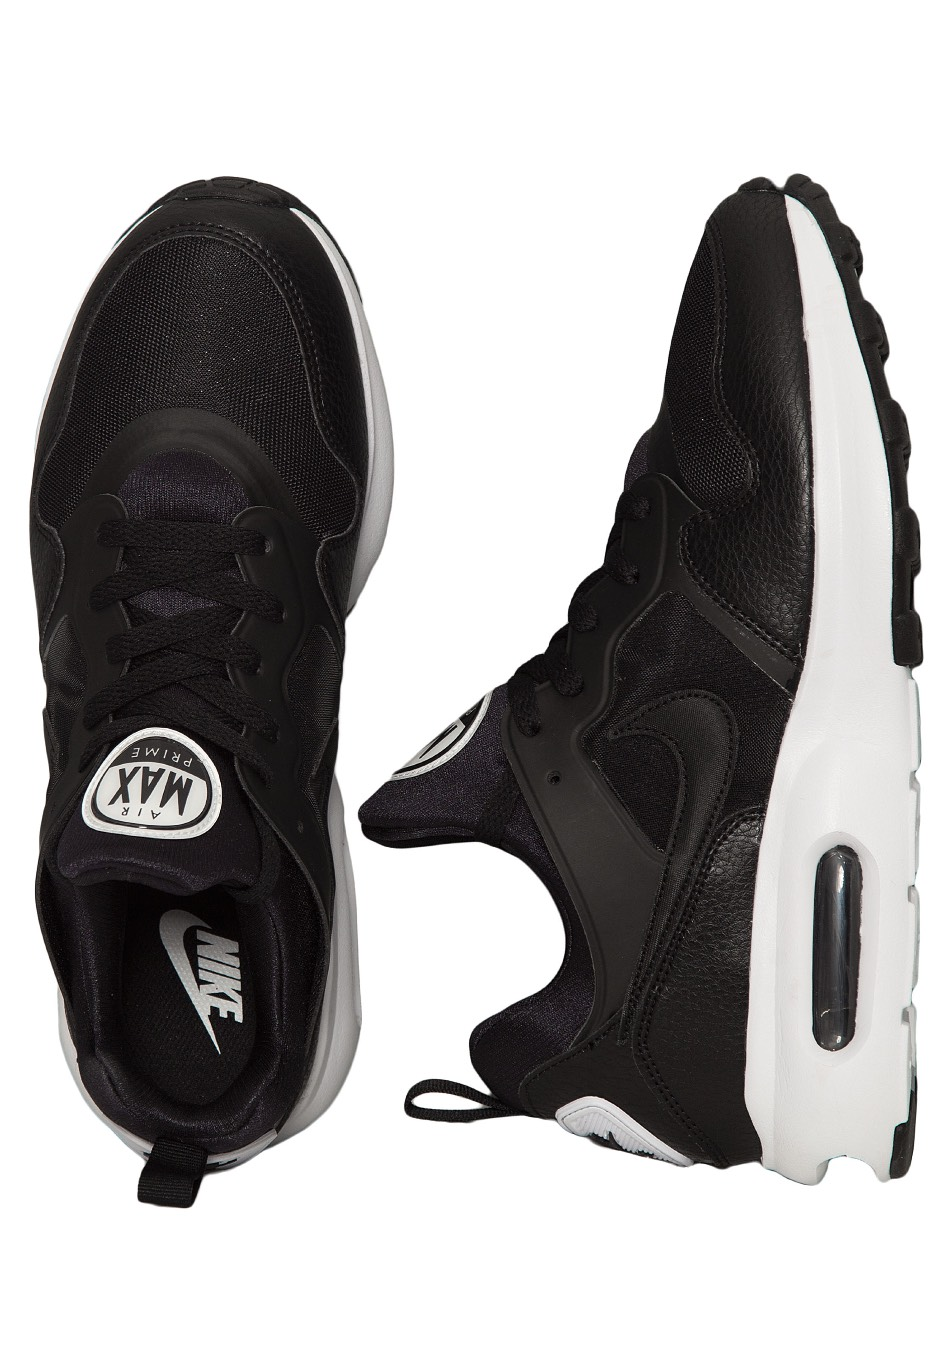 check out 1a3cf 35b7c Nike - Air Max Prime Black Black White - Chaussures - Impericon.com FR